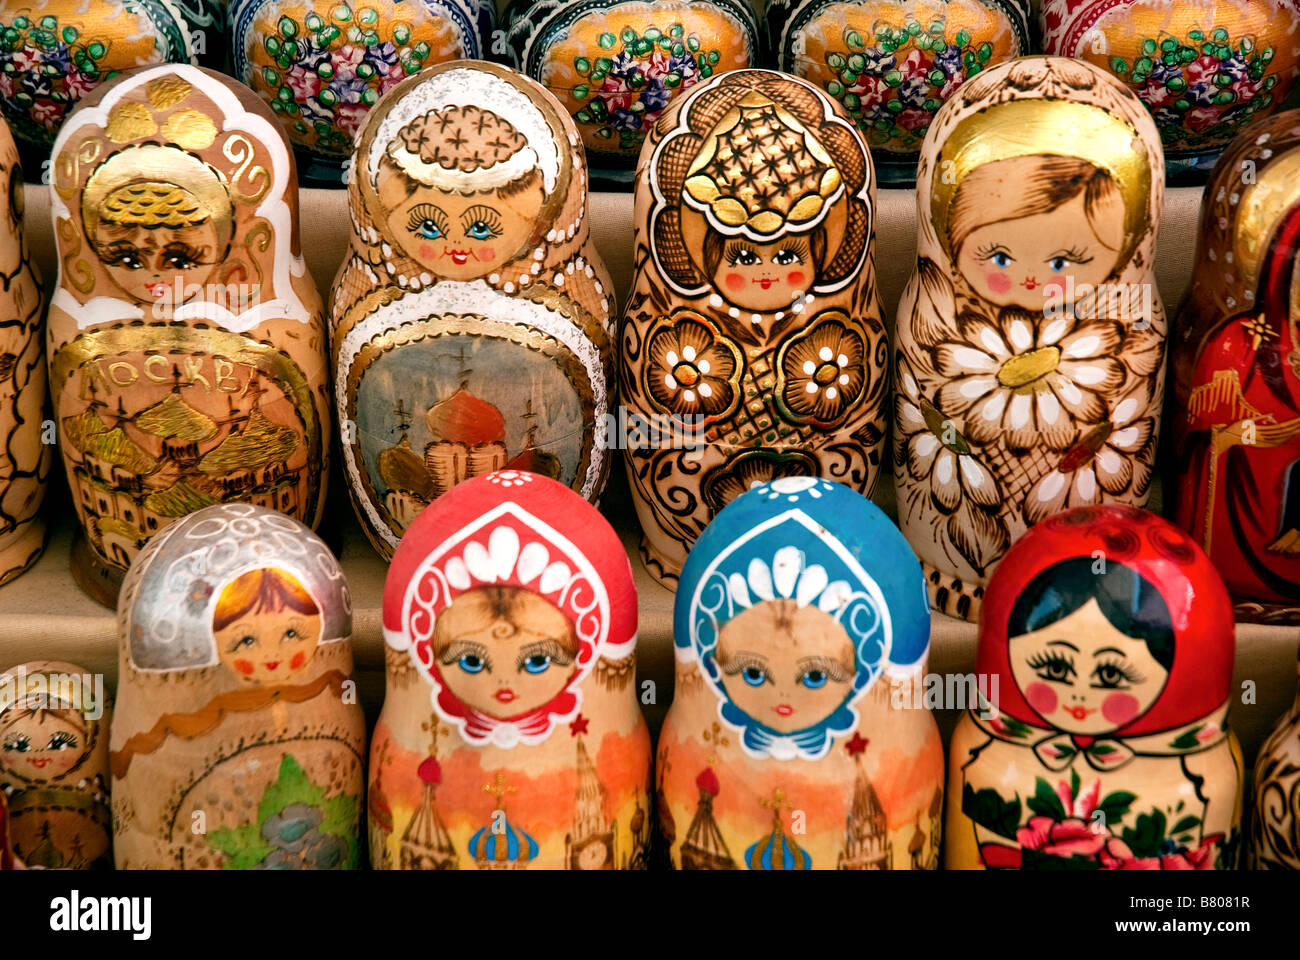 russian matrioshka dolls in baku azerbaijan market - Stock Image